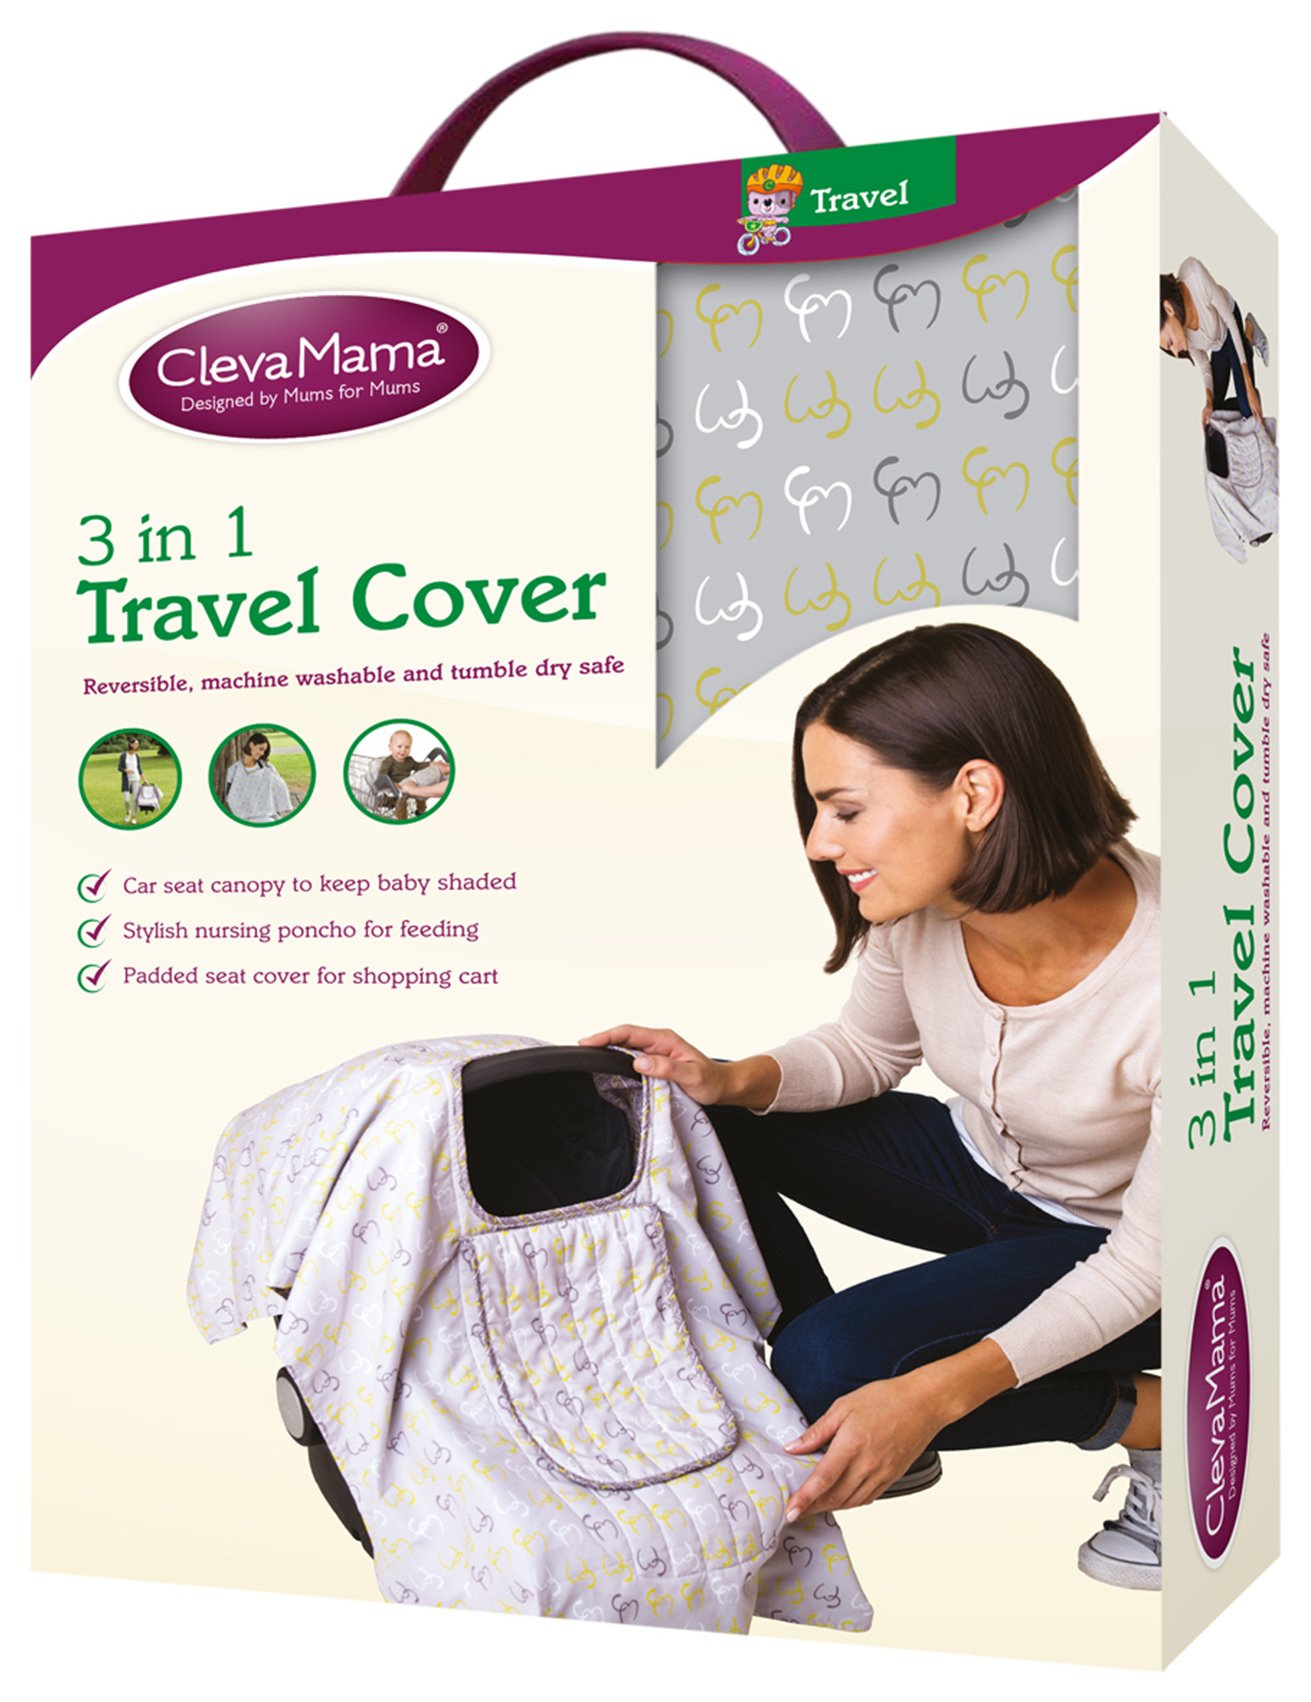 Image of Clevamama 3 in 1 Travel Cover - Lime.